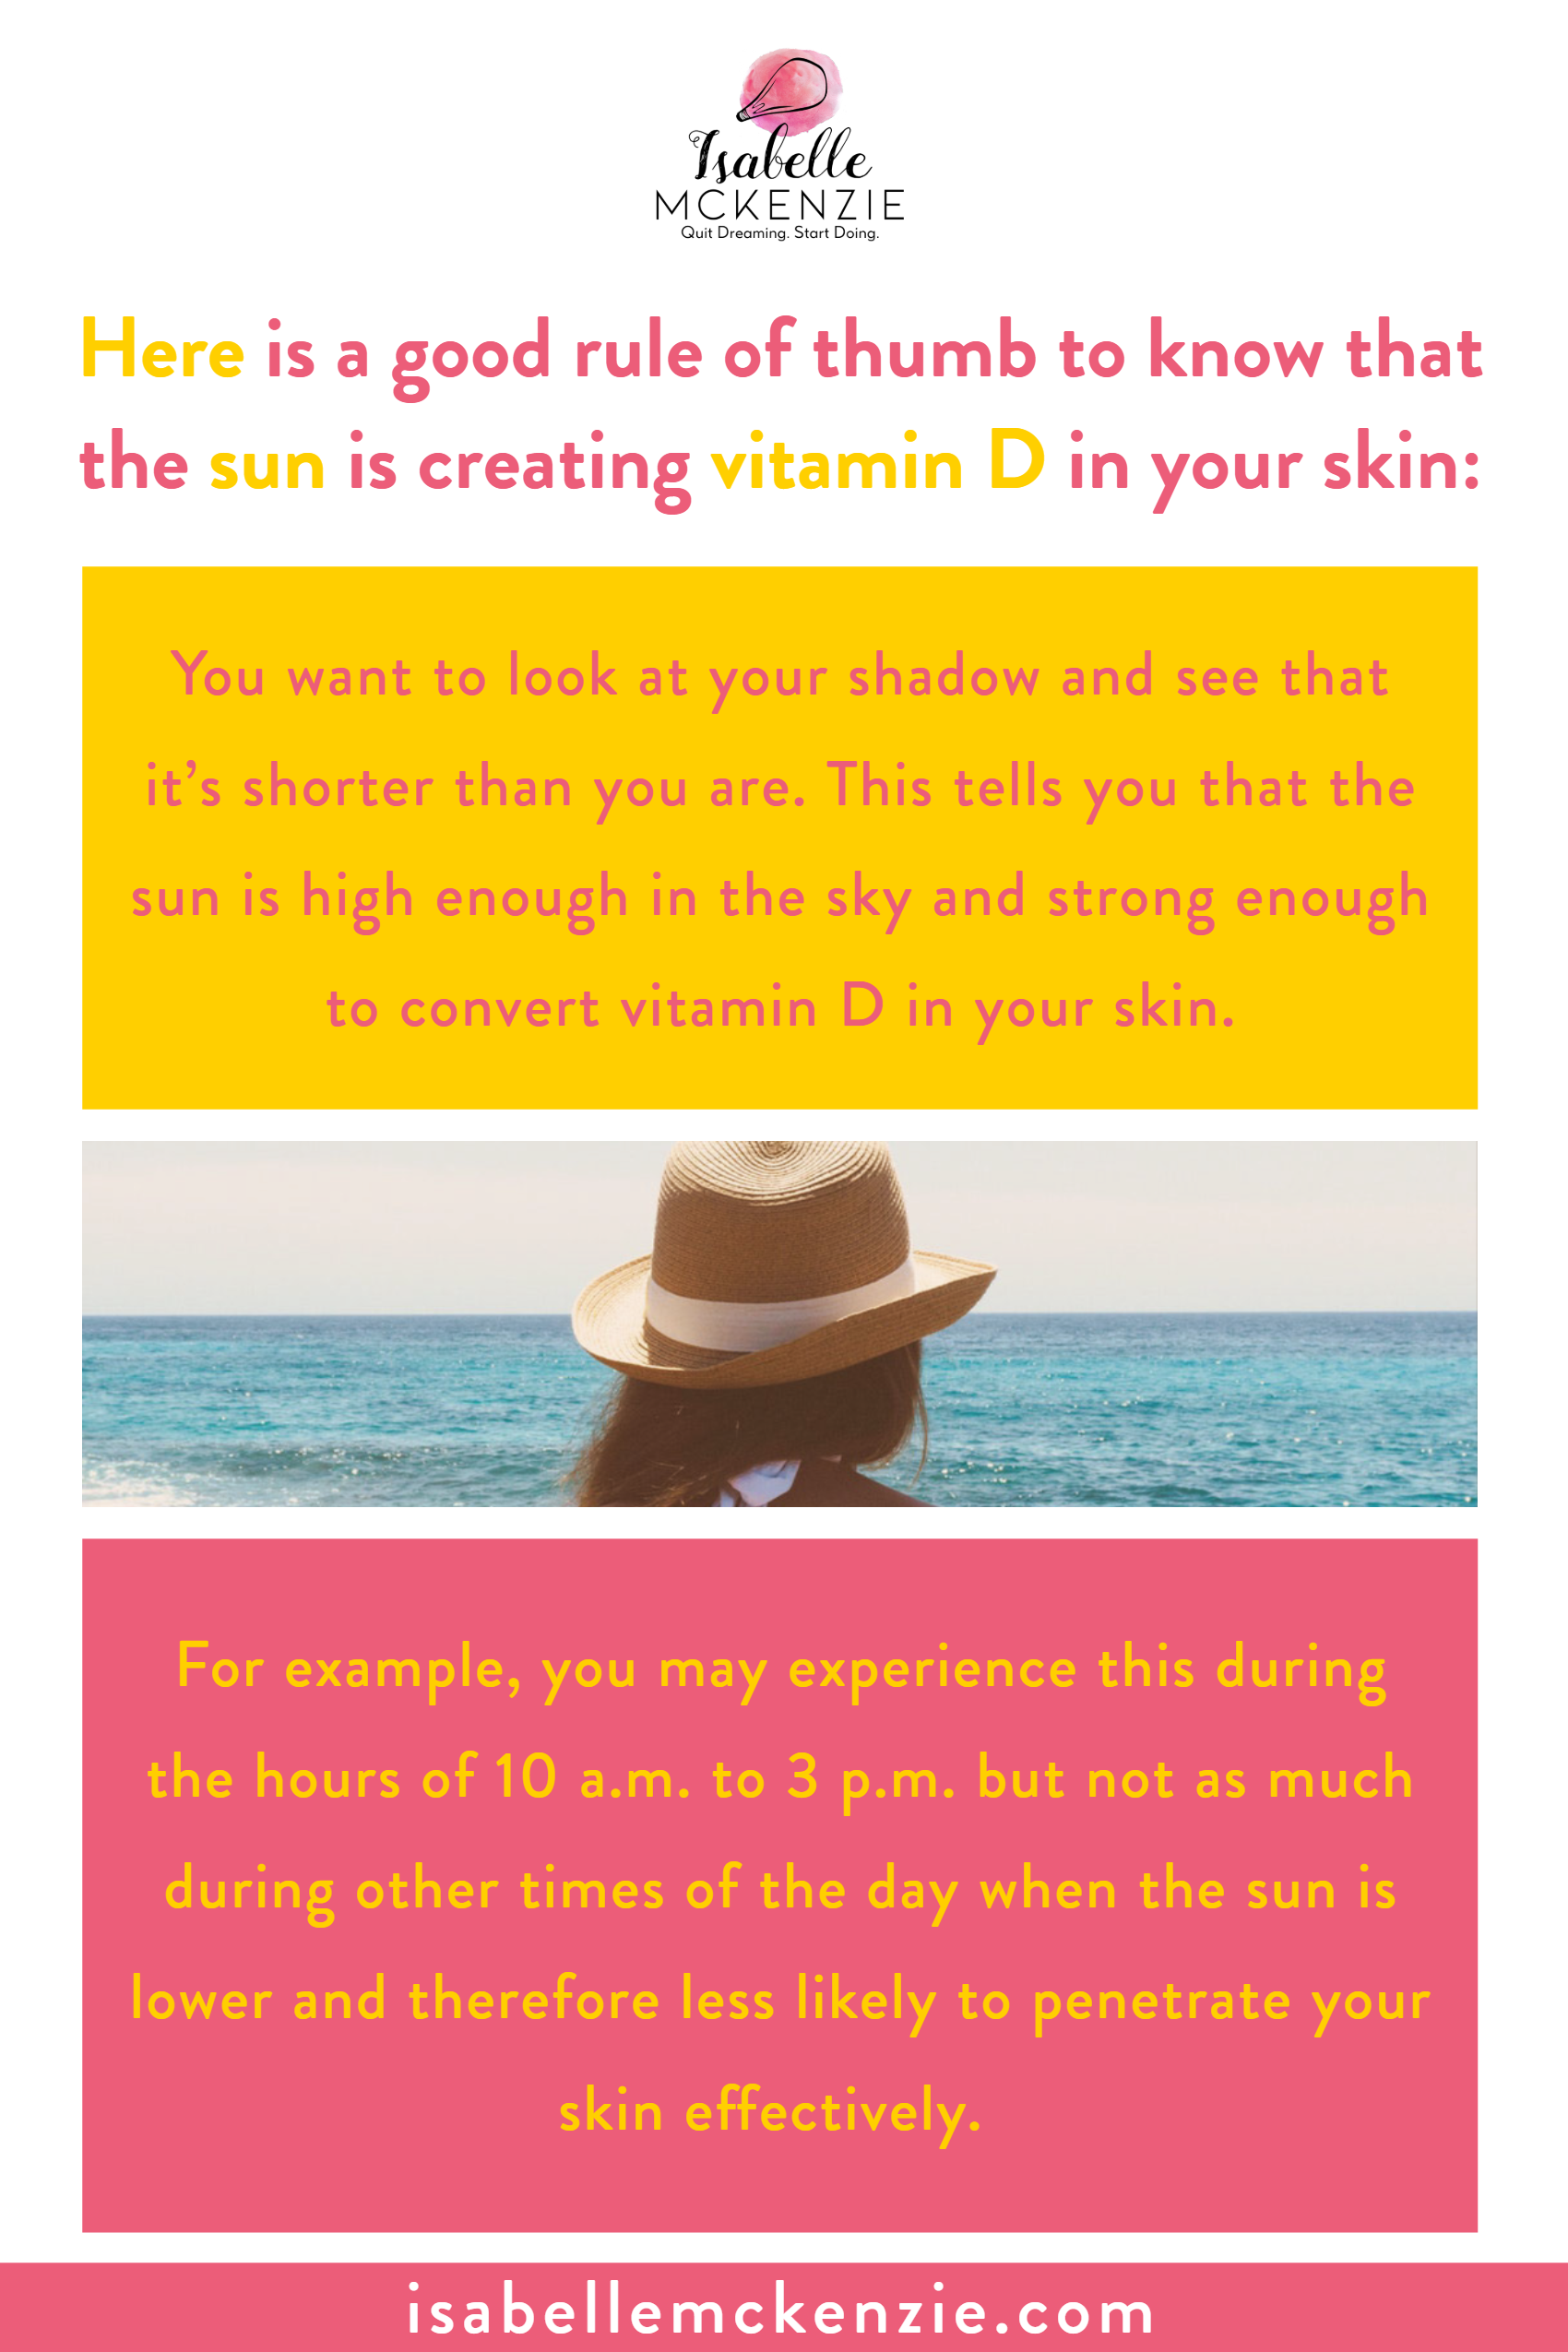 How To Know If The Sun Is Creating Vitamin D